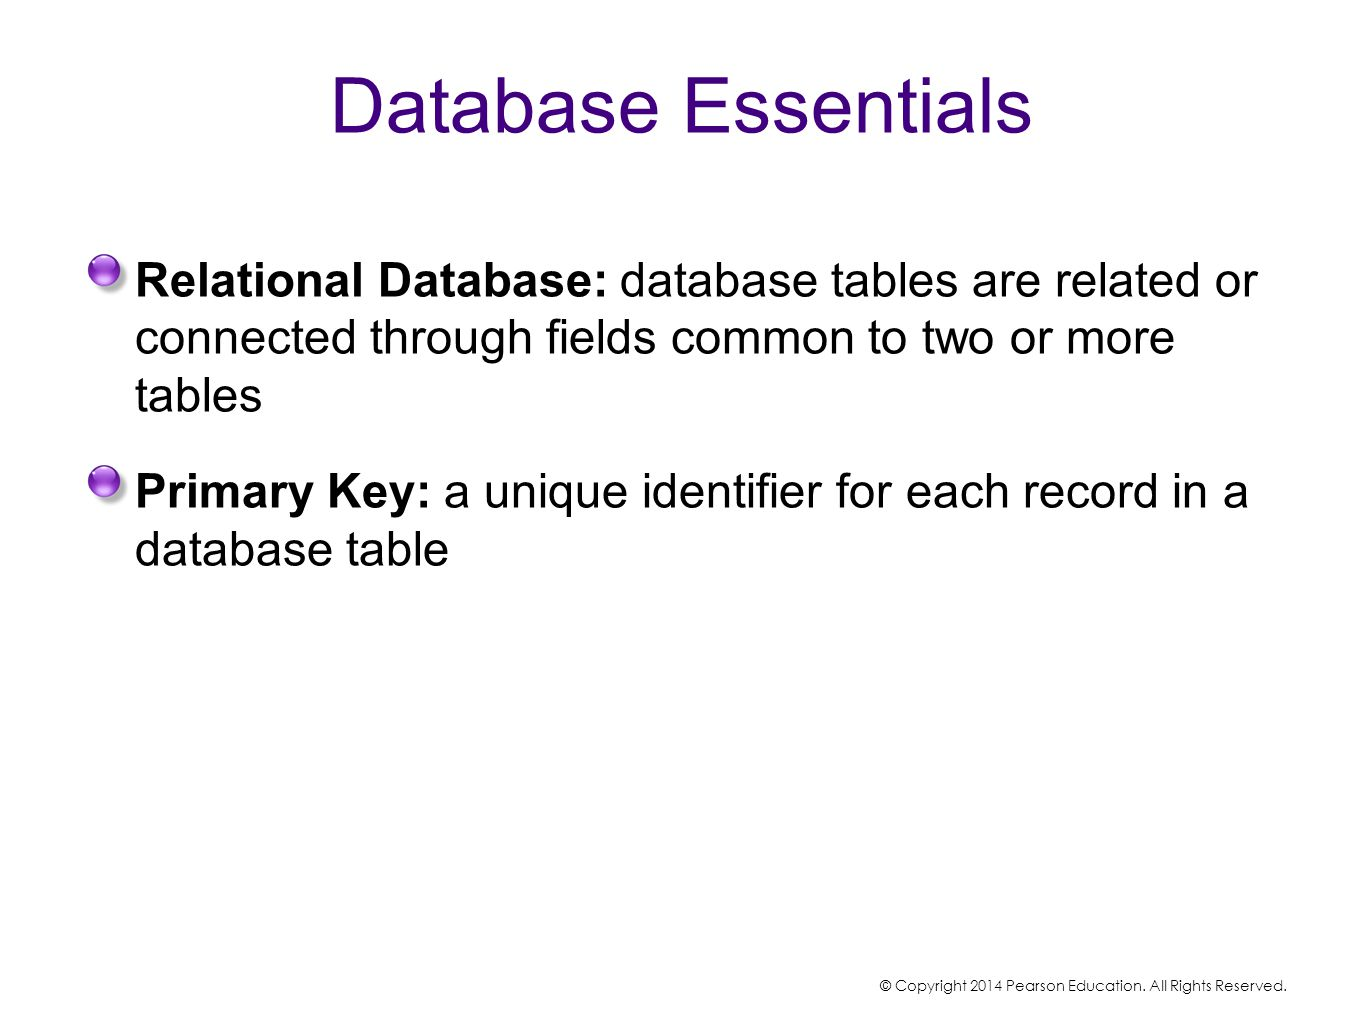 Database Essentials Relational Database: database tables are related or connected through fields common to two or more tables.